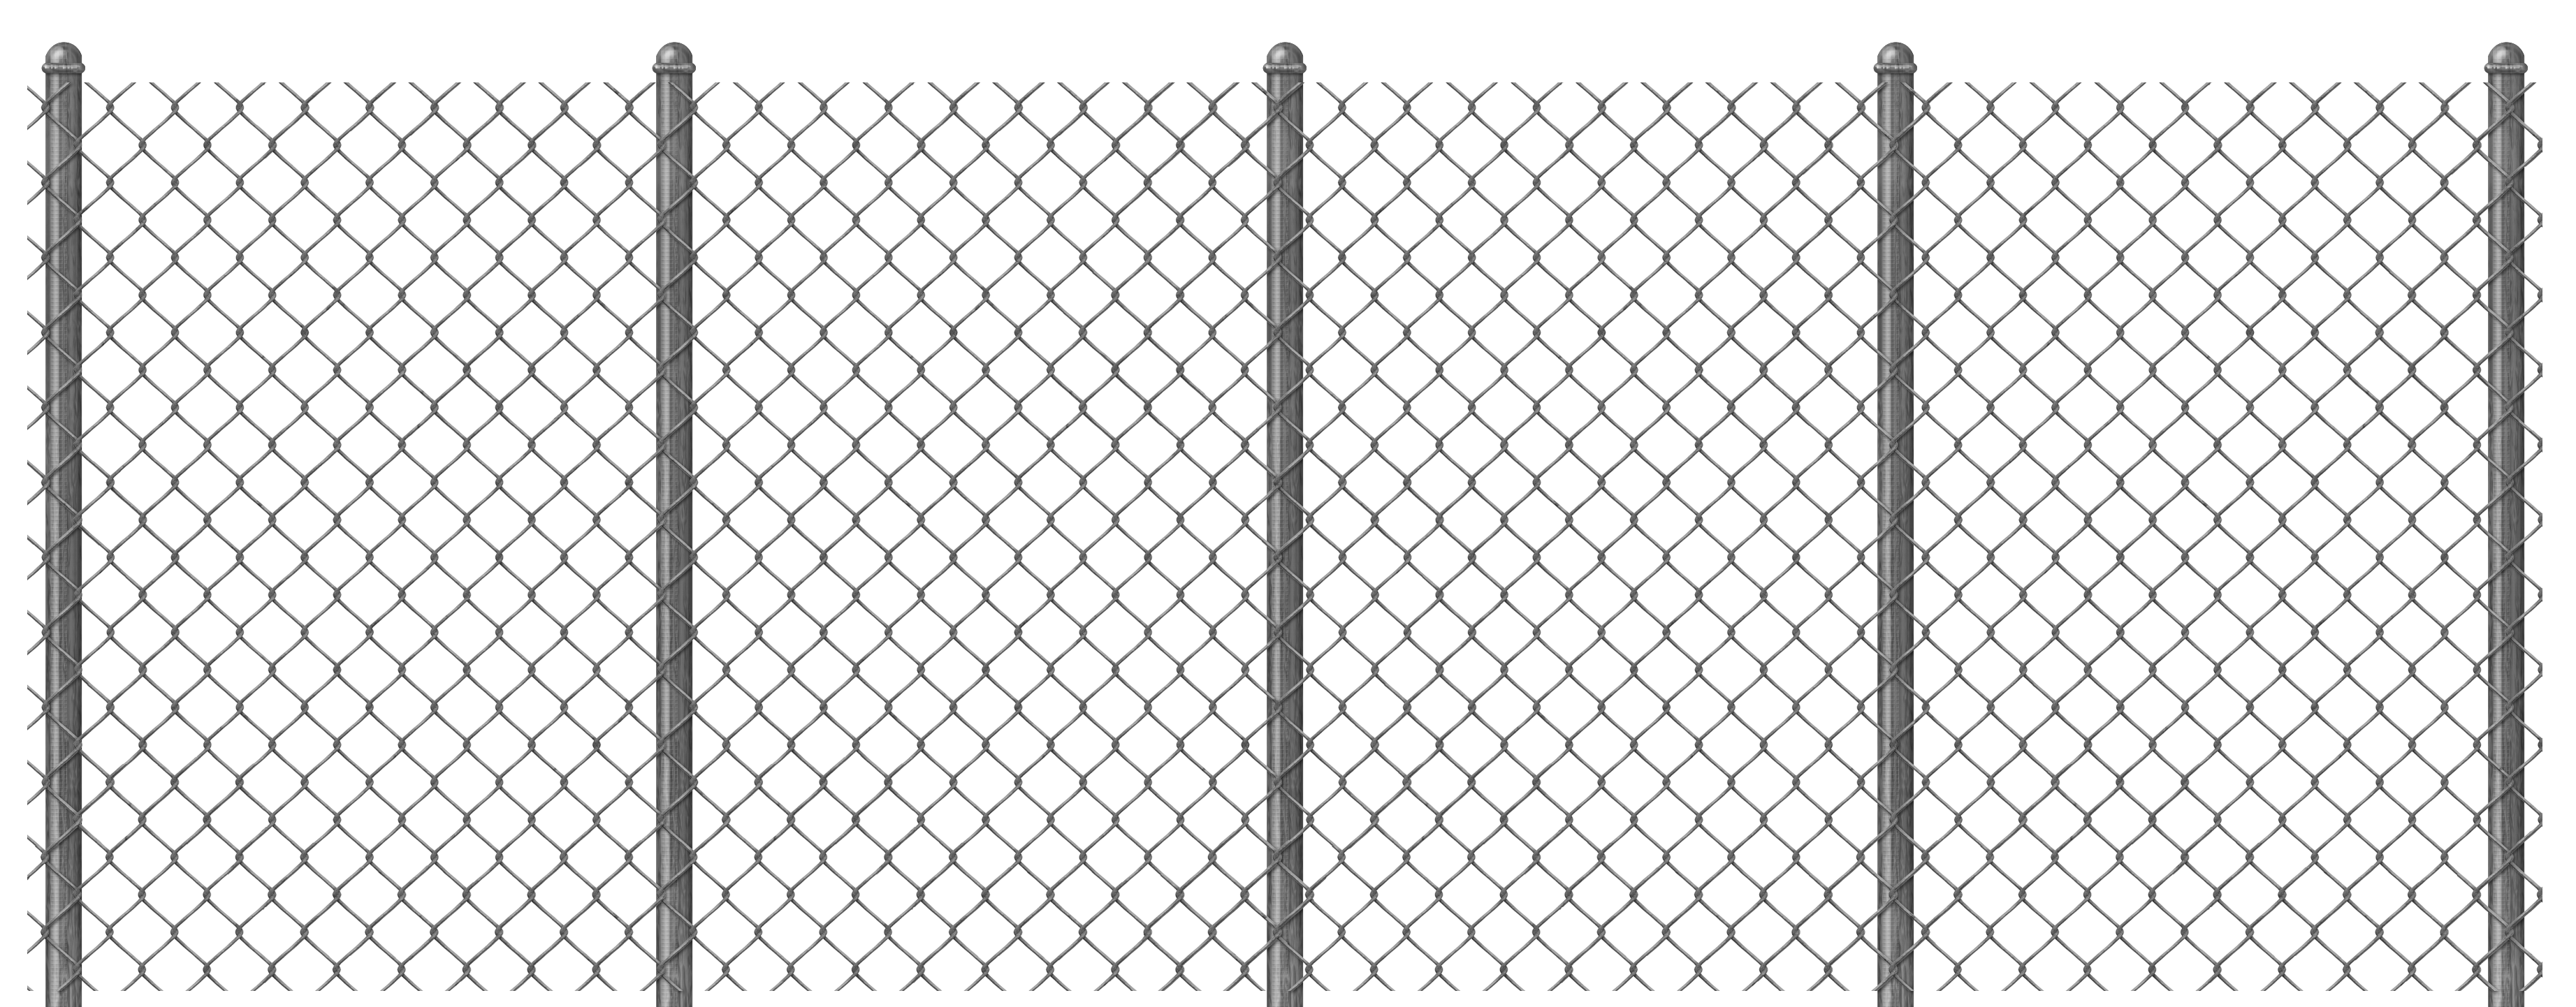 Transparent Chain Link Fence Png Clipart Gallery Yopriceville High Quality Images And Transparent Png Free Clipart Chain Link Fence Clip Art Free Clip Art